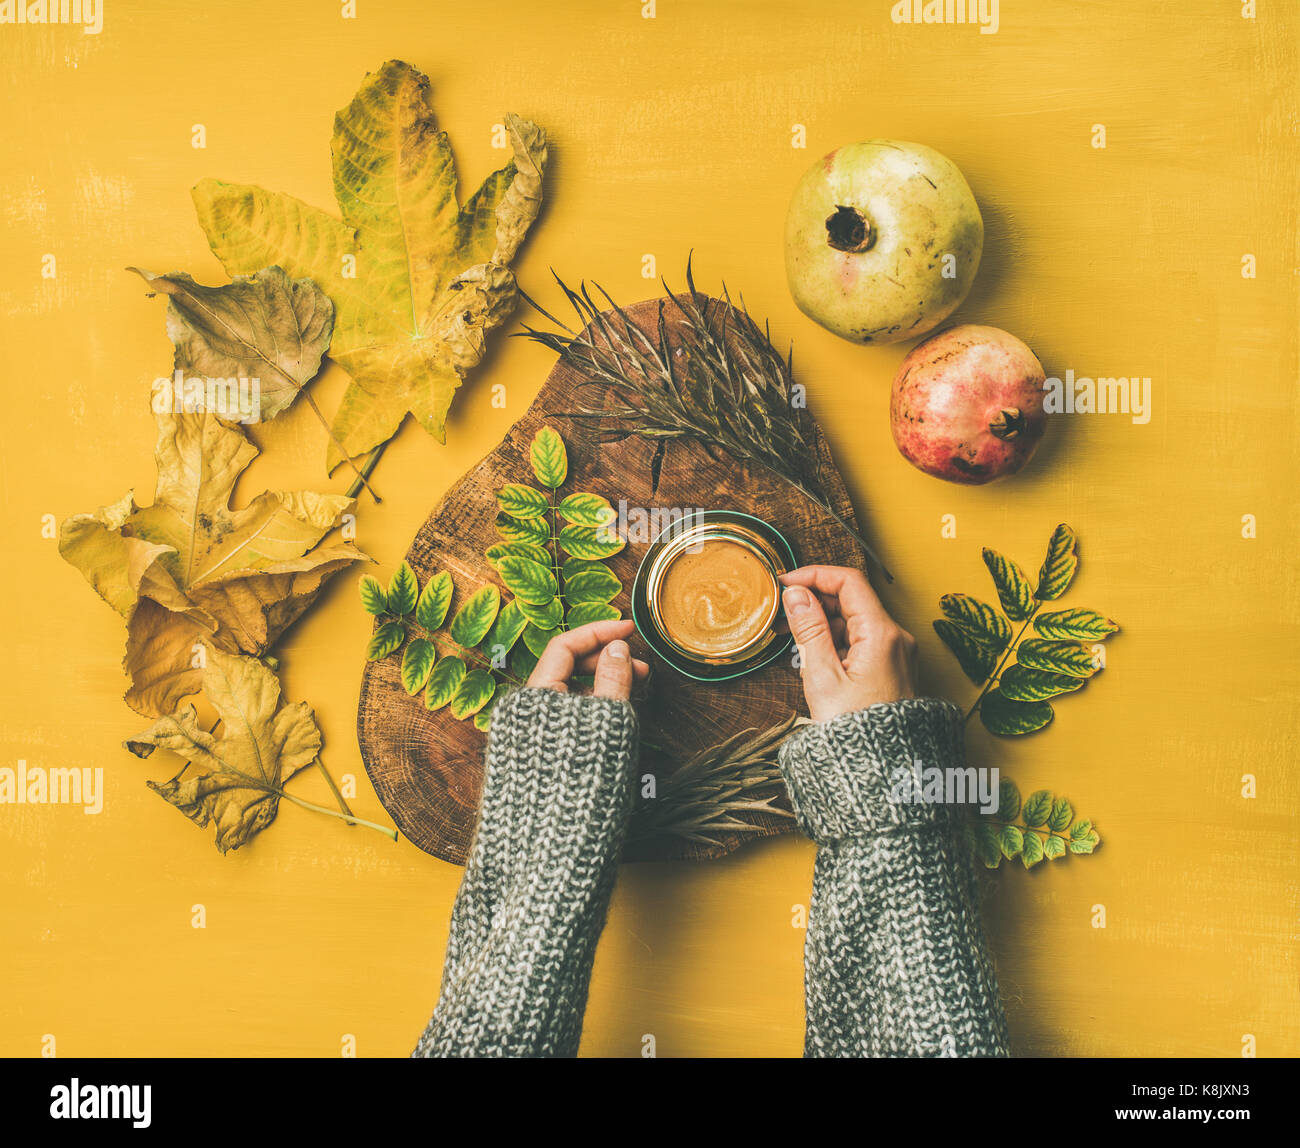 Woman' s hands in grey woolen sweater holding cup of espresso - Stock Image